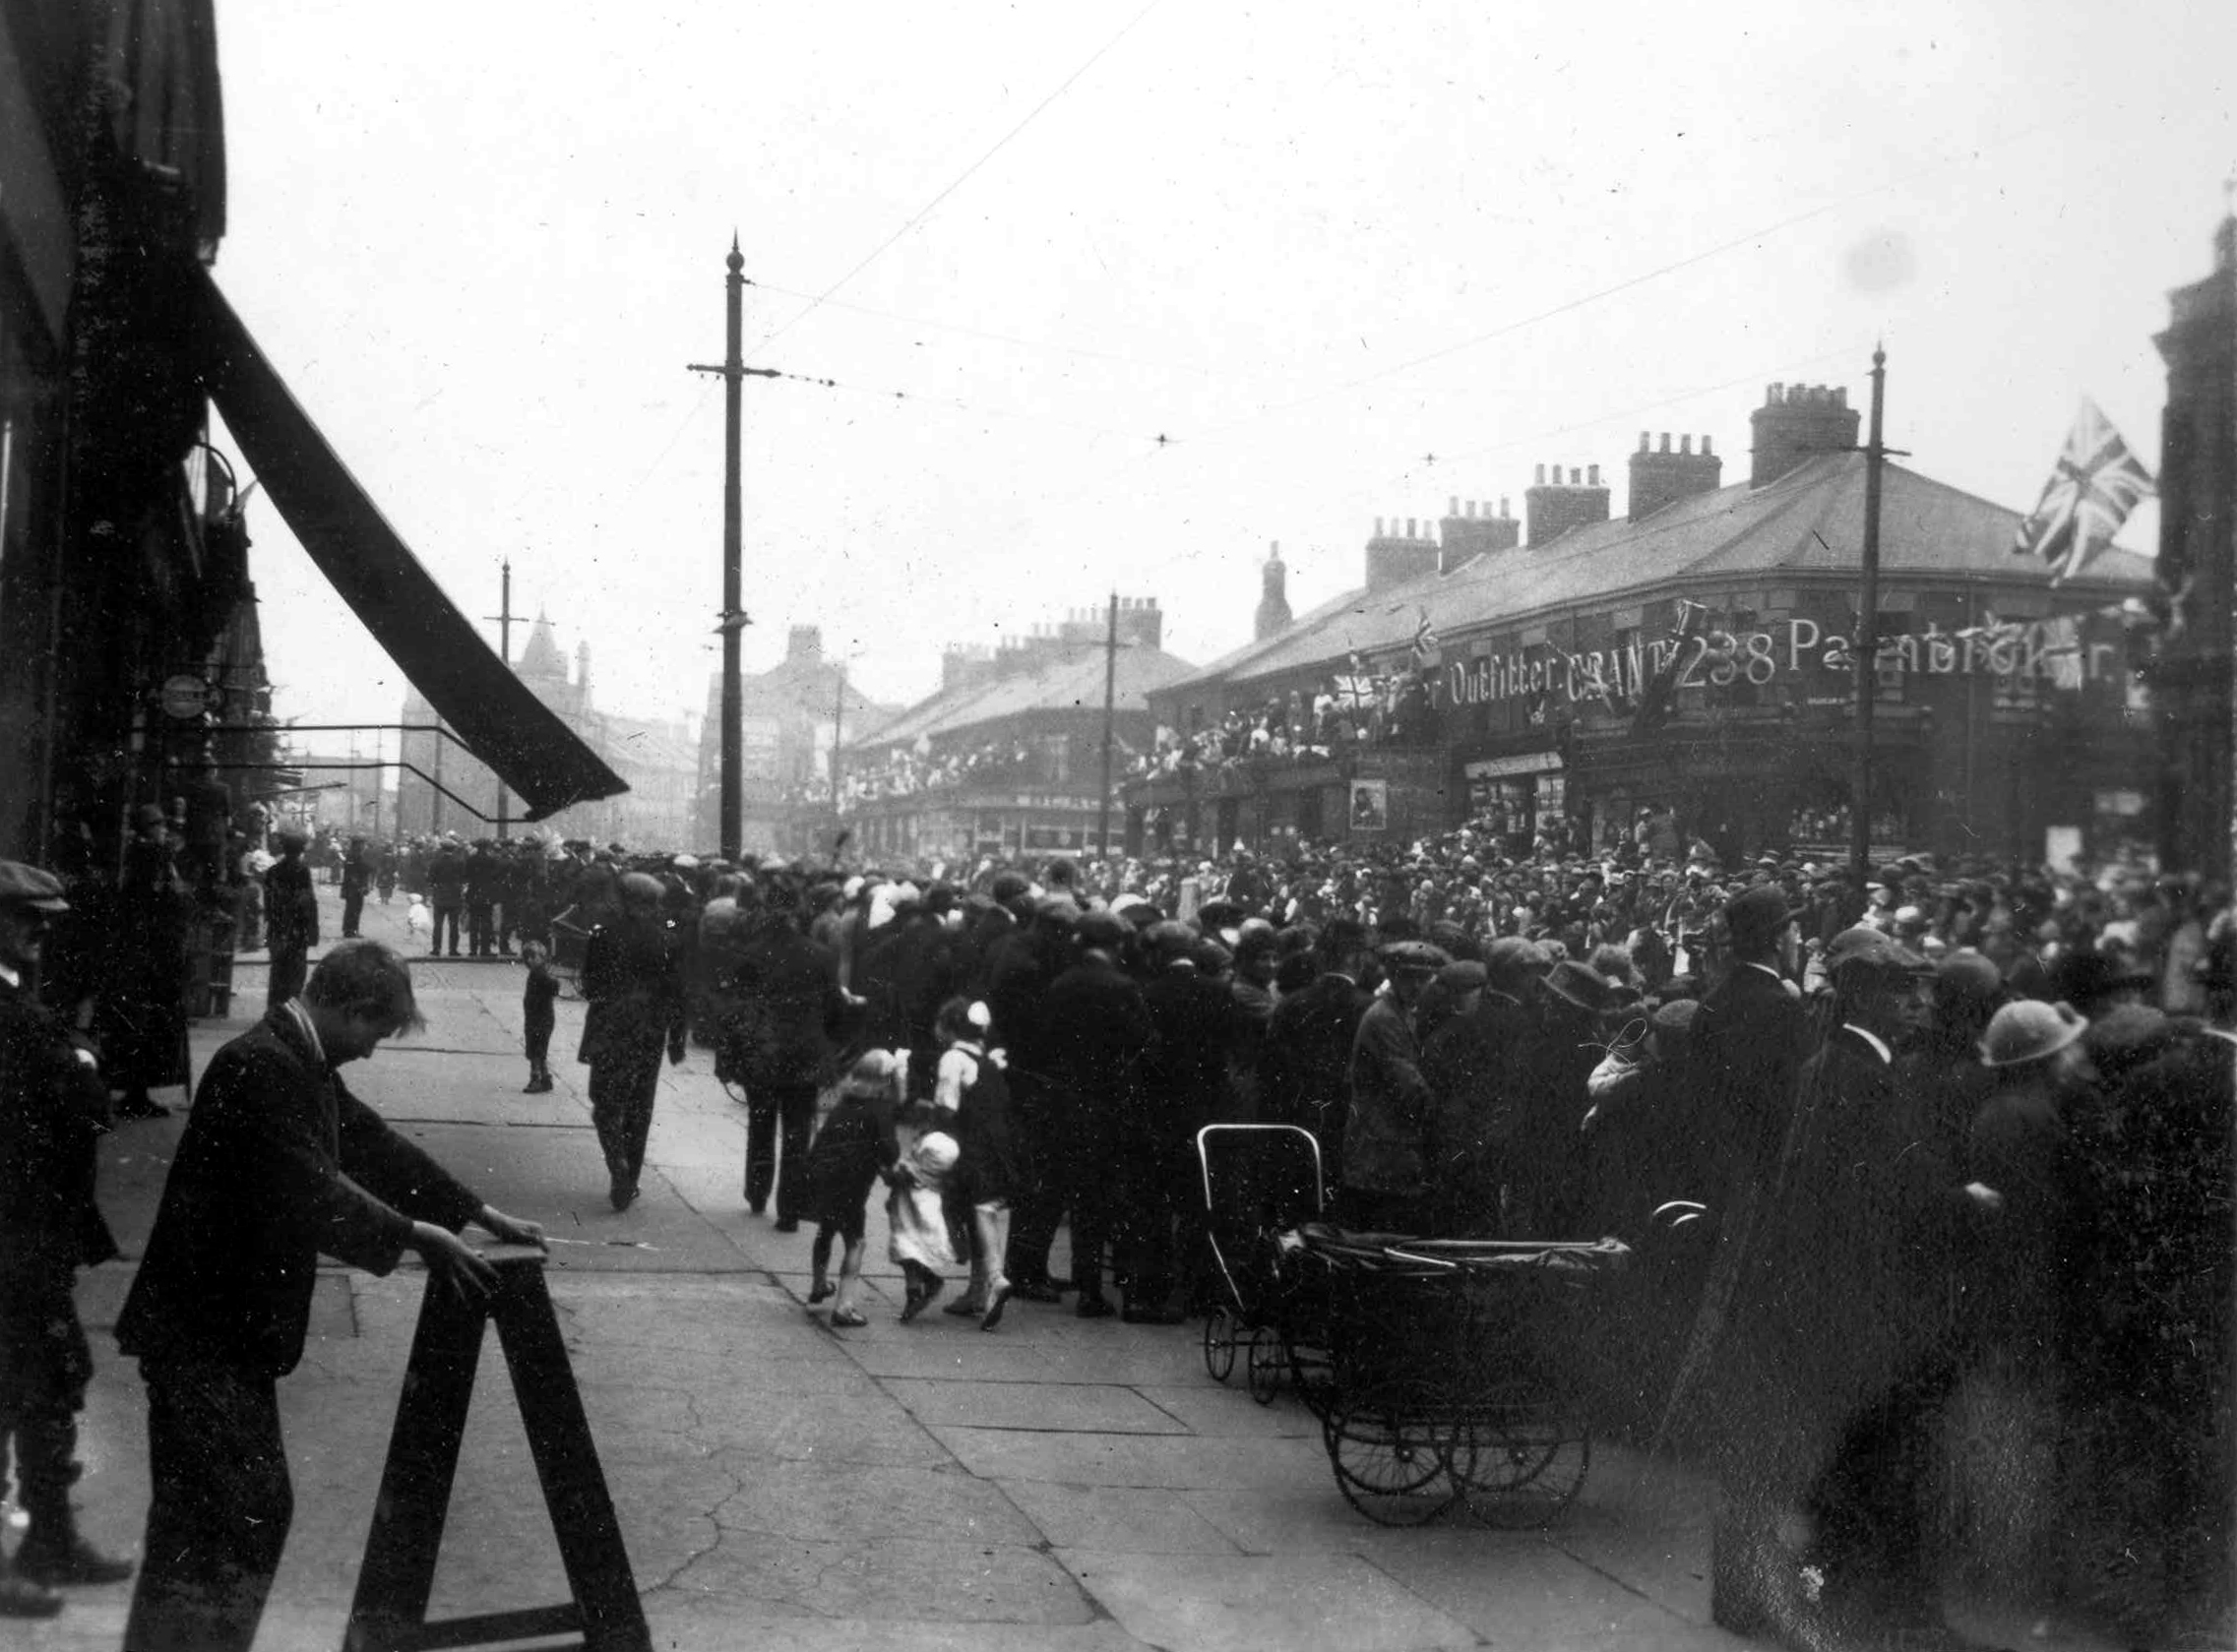 185 Celsius To Fahrenheit >> The Prince of Wales' visit 1923 | Heaton History Group